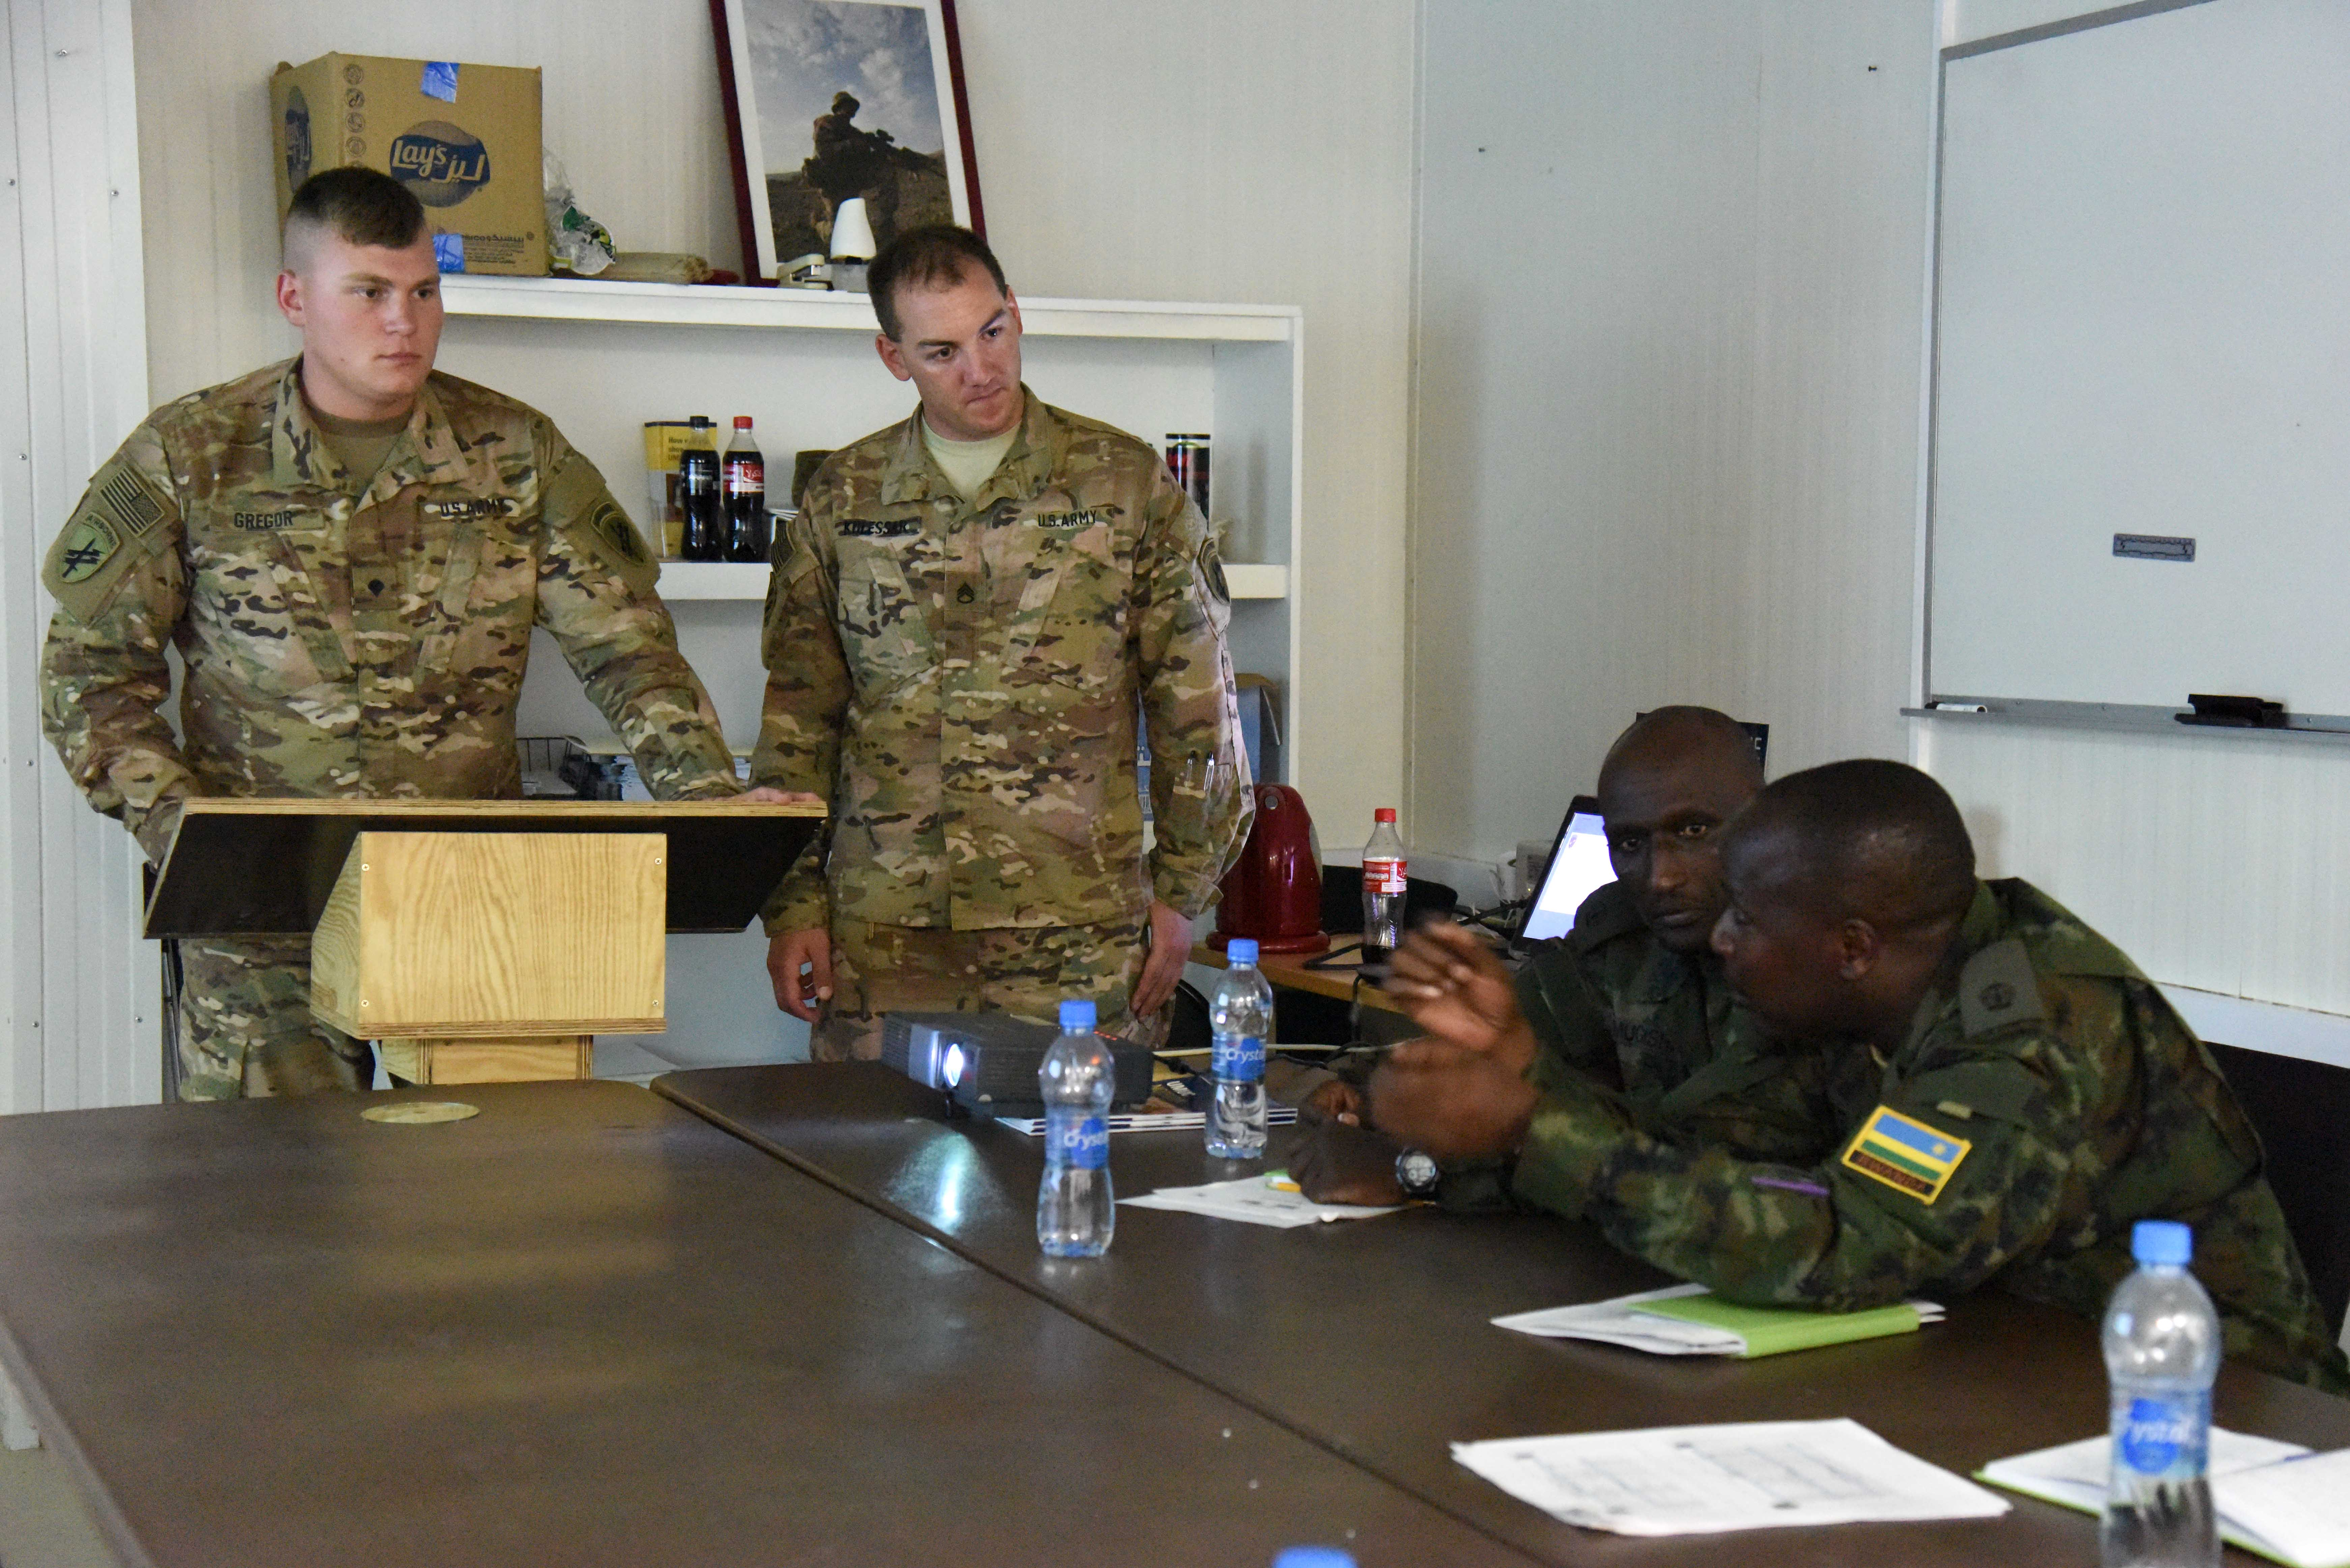 Members of the Rwanda Defence Force discuss use of interpreters with Soldiers from the 403rd Civil Affairs Battalion during a Civil-Military Cooperation engagement April 6, 2016, at Camp Lemonnier, Djibouti. The engagement was the second exchange of best practices to strengthen the relationship between CJTF-HOA and RDF to support regional training efforts for peacekeeping operations. (U.S. Air Force photo by Staff Sgt. Victoria Sneed)